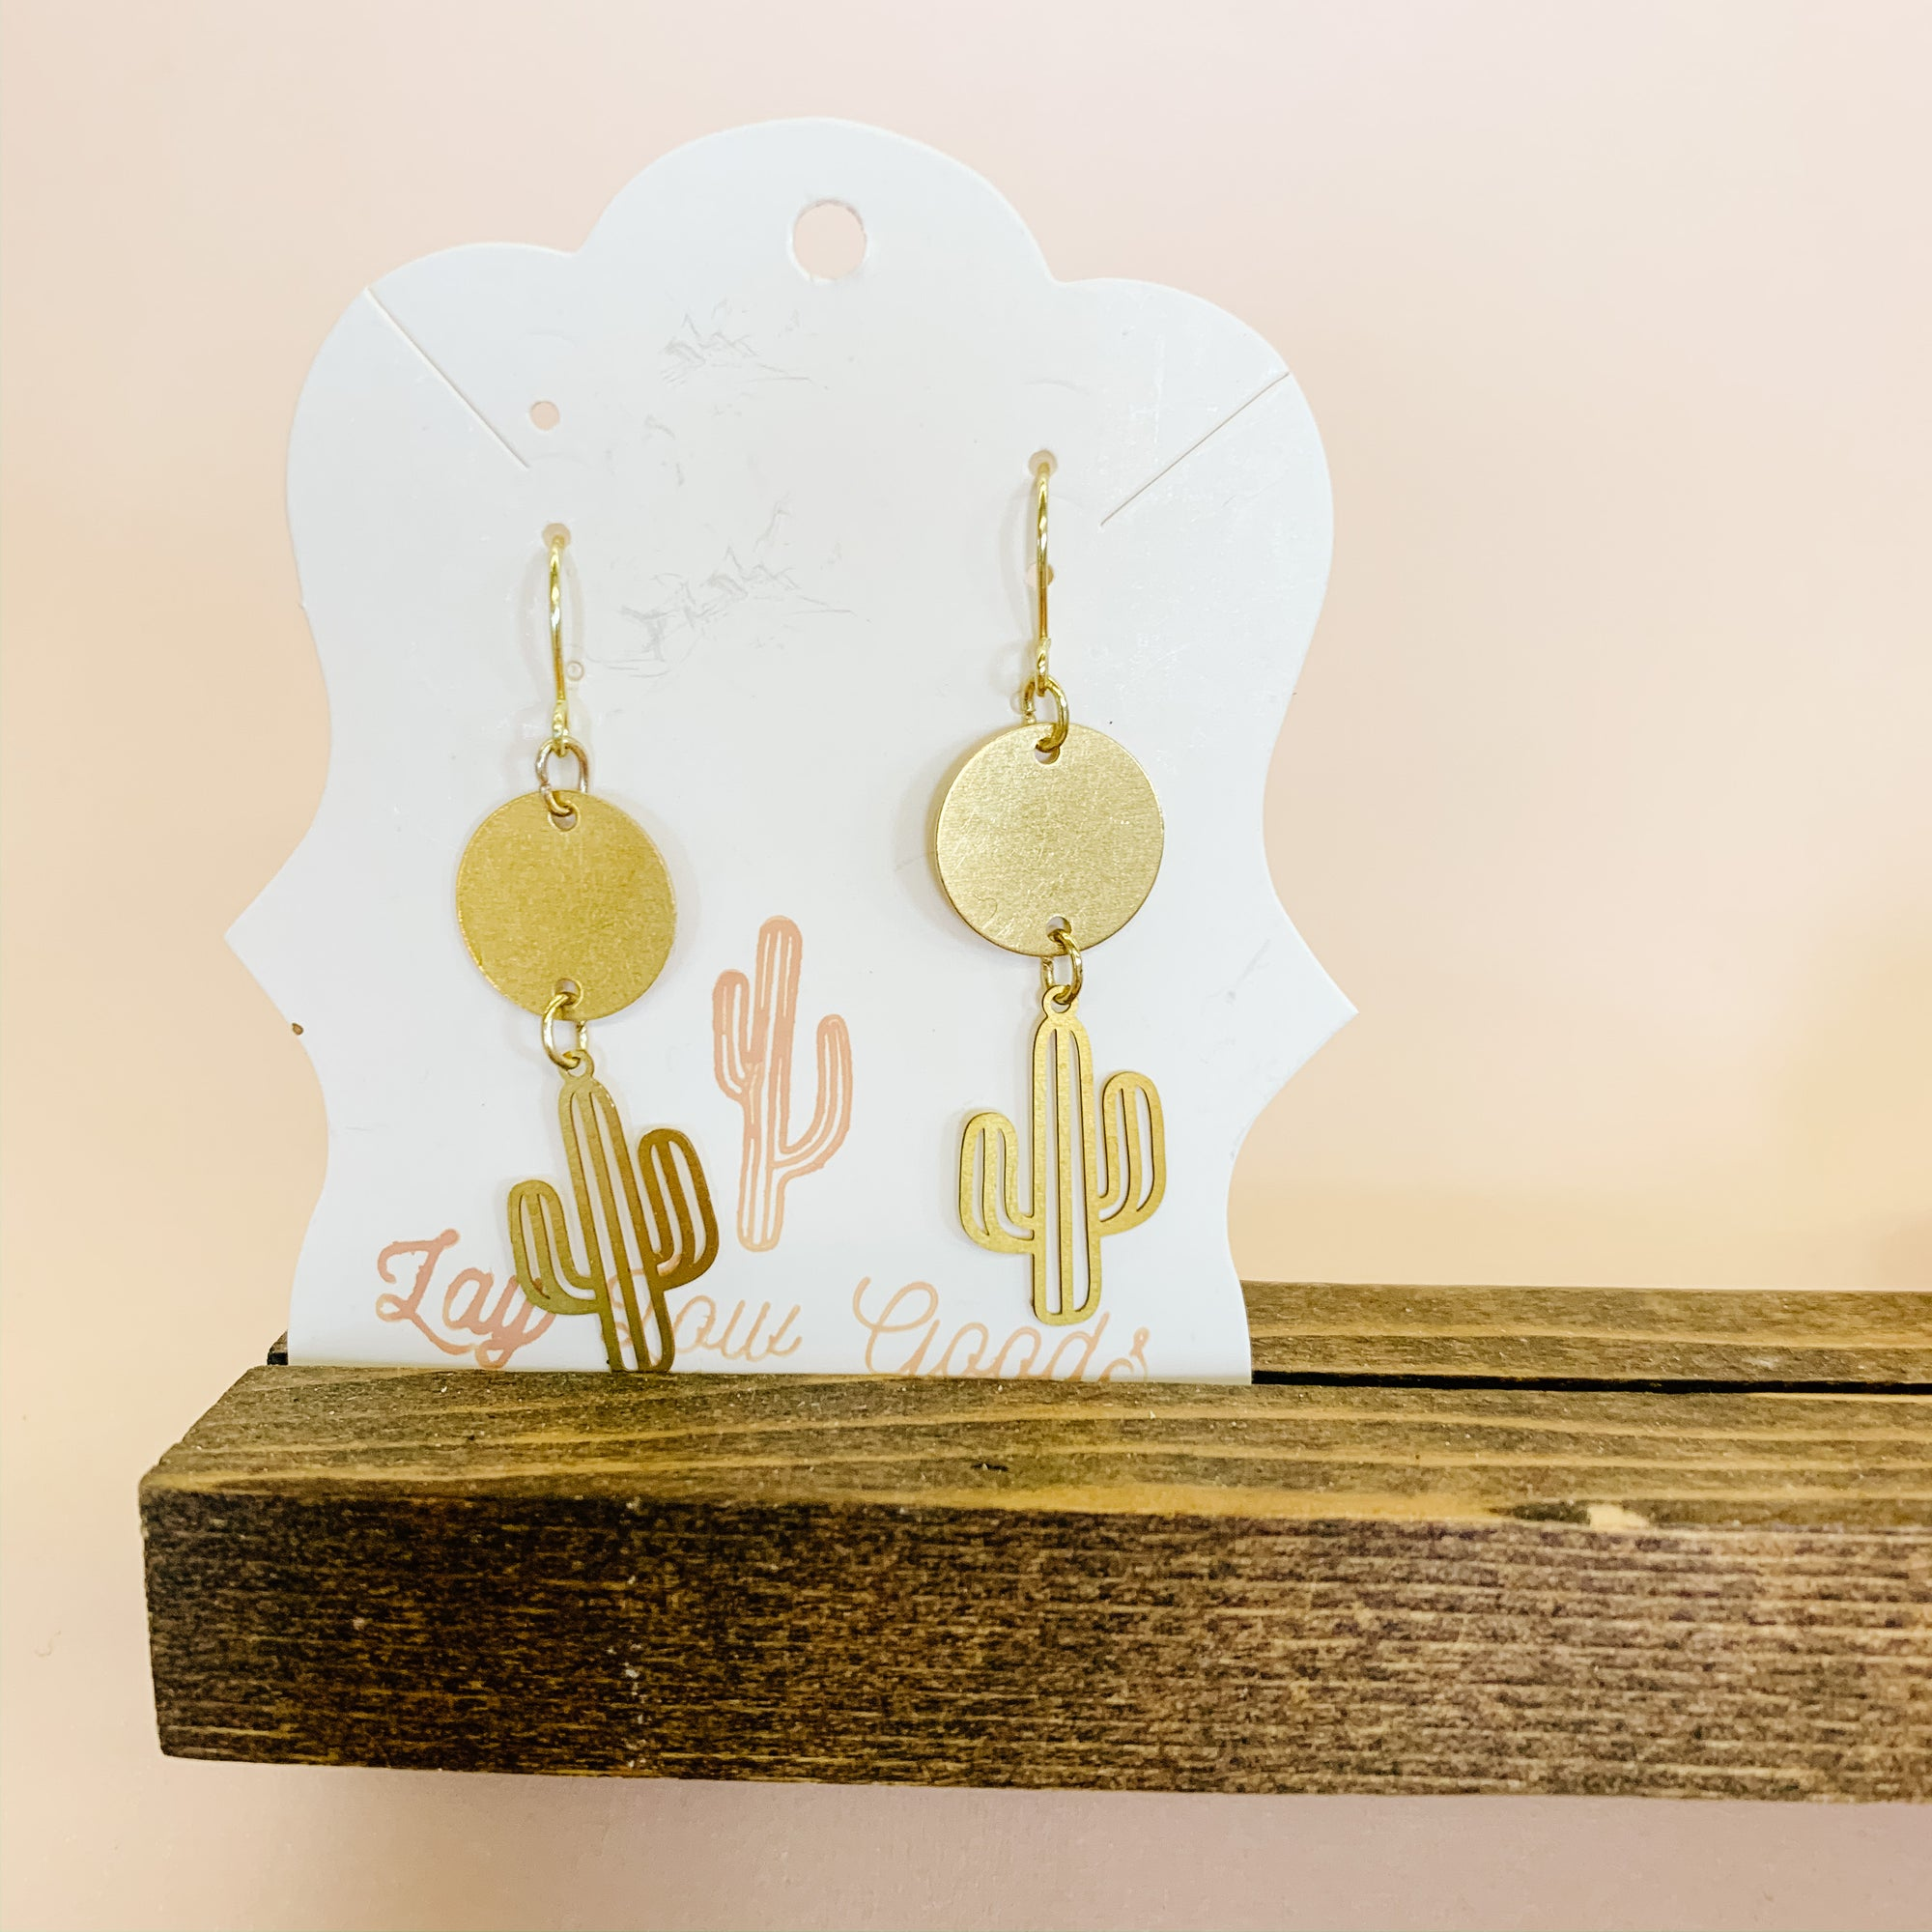 'Sun over Saguaro' Boho Earrings - Femme Wares Niagara Local Small Business